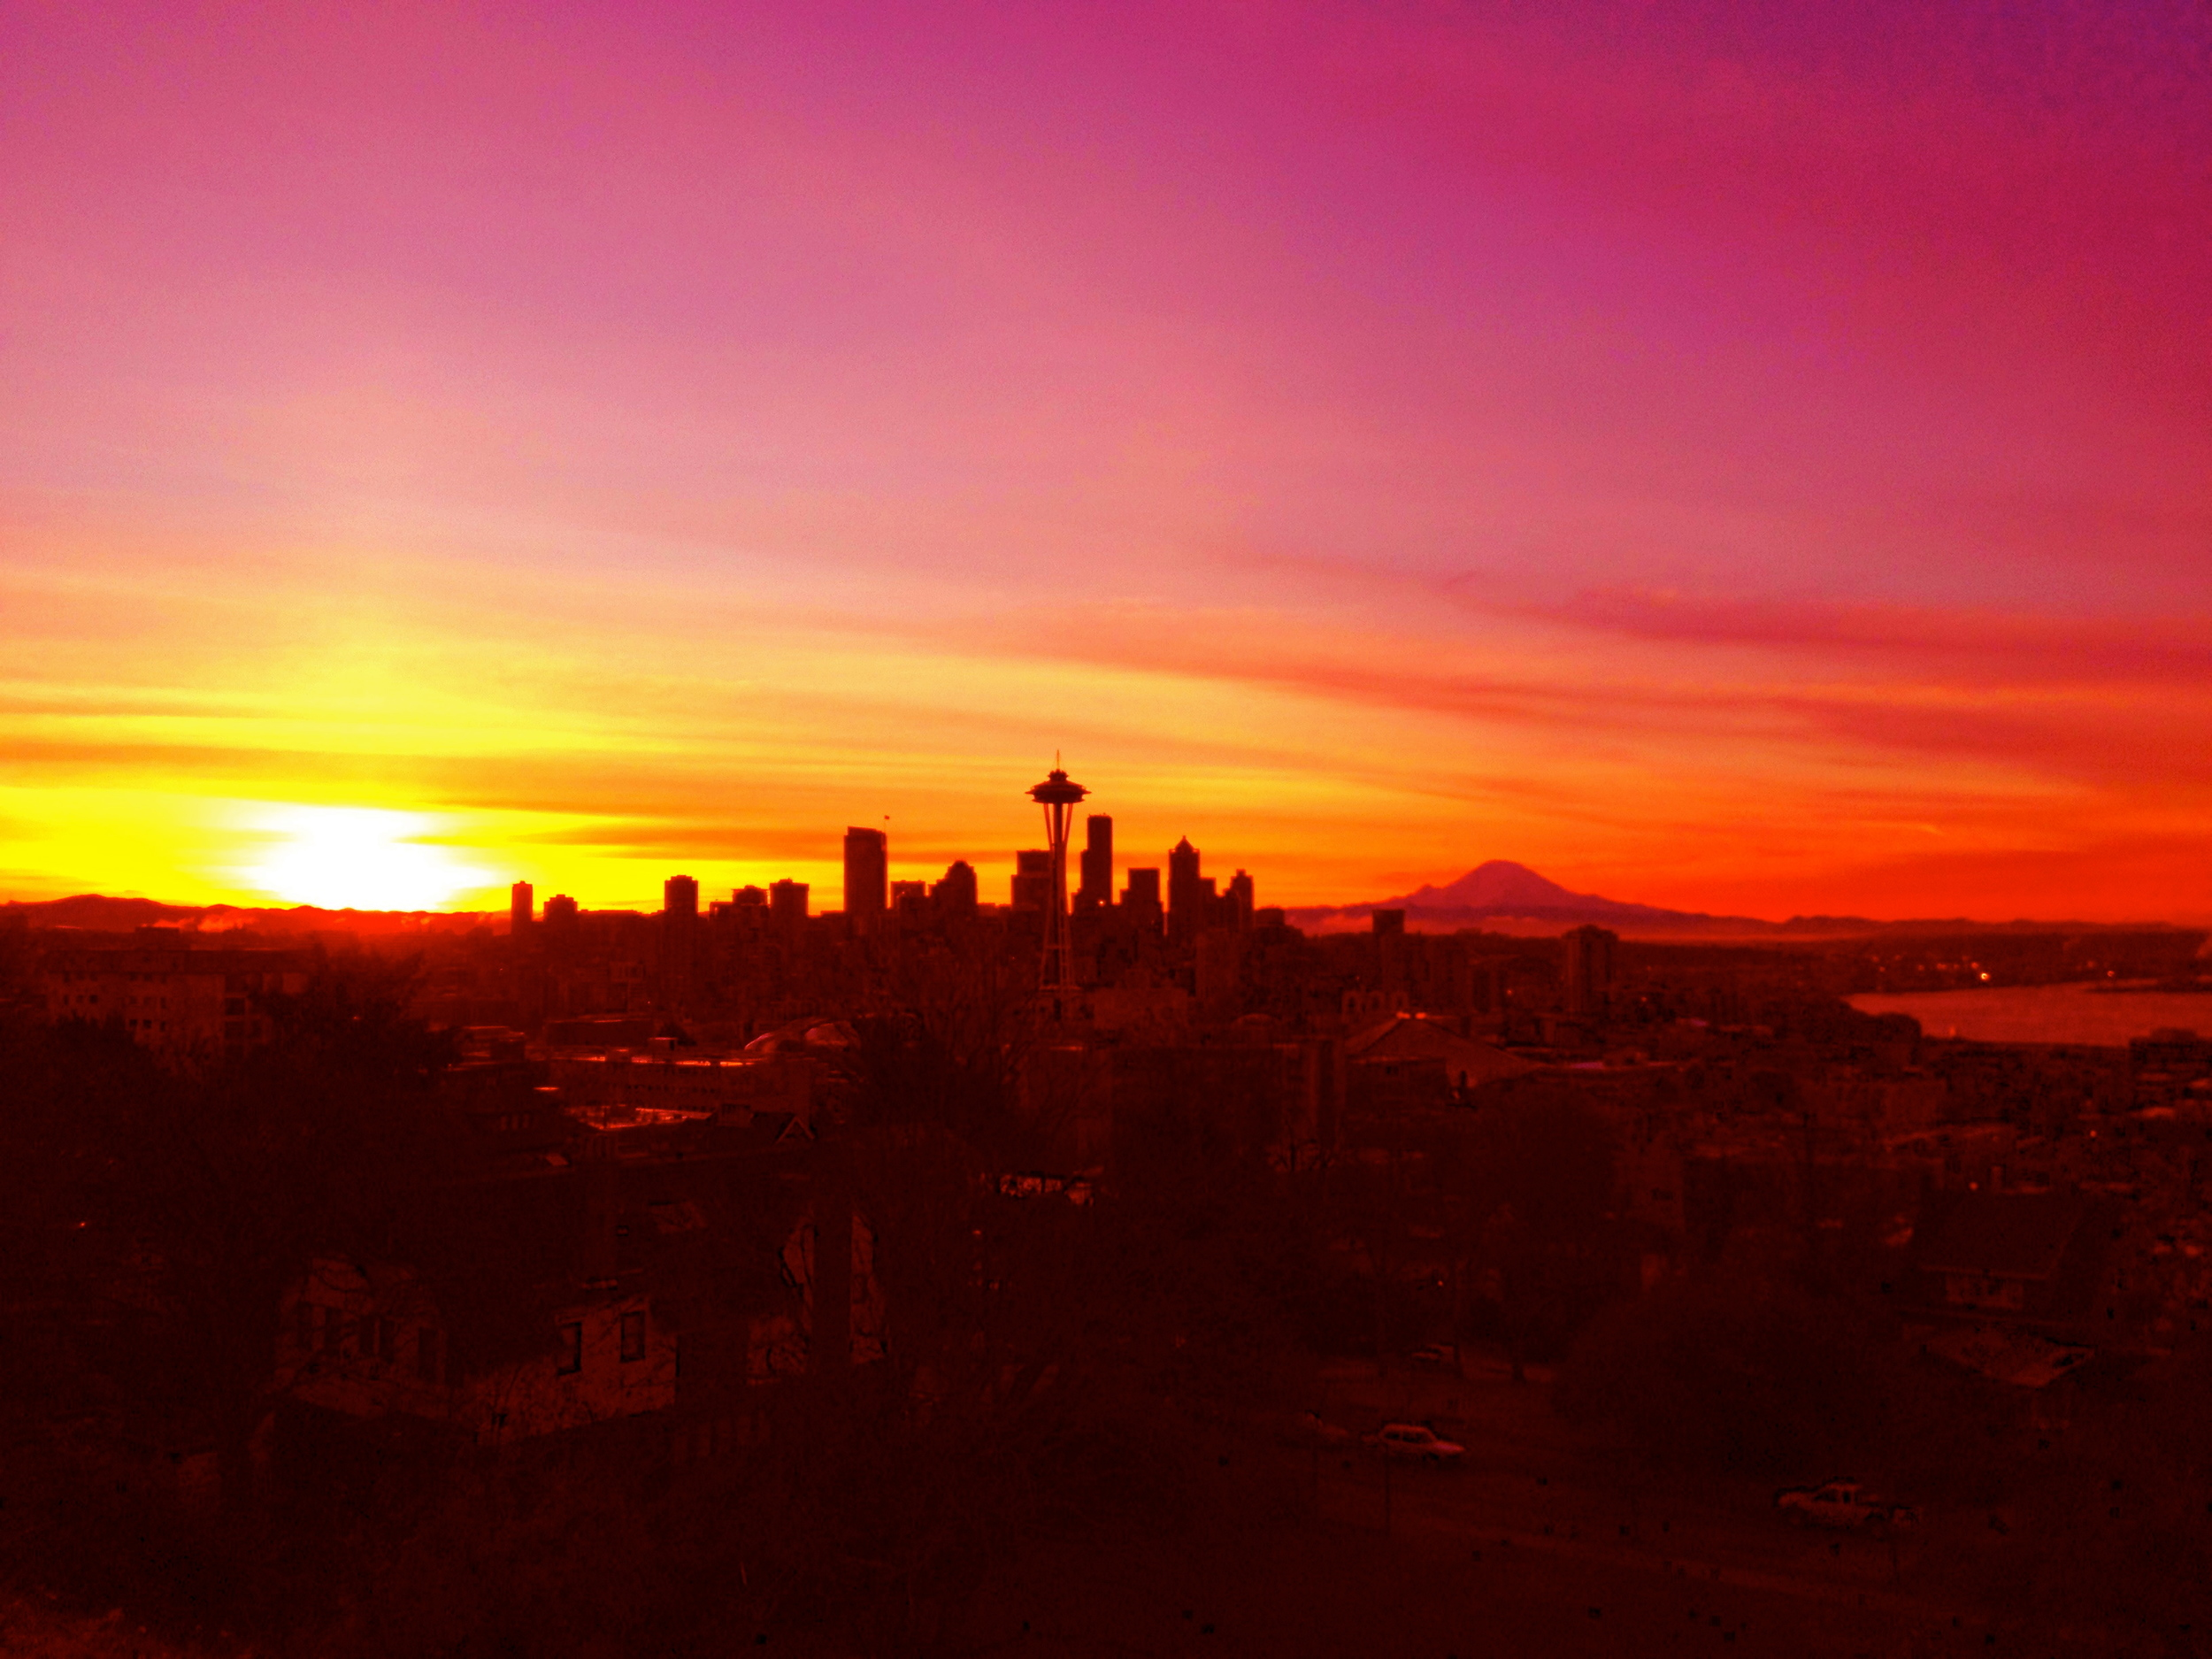 Morning Sunrise in Seattle